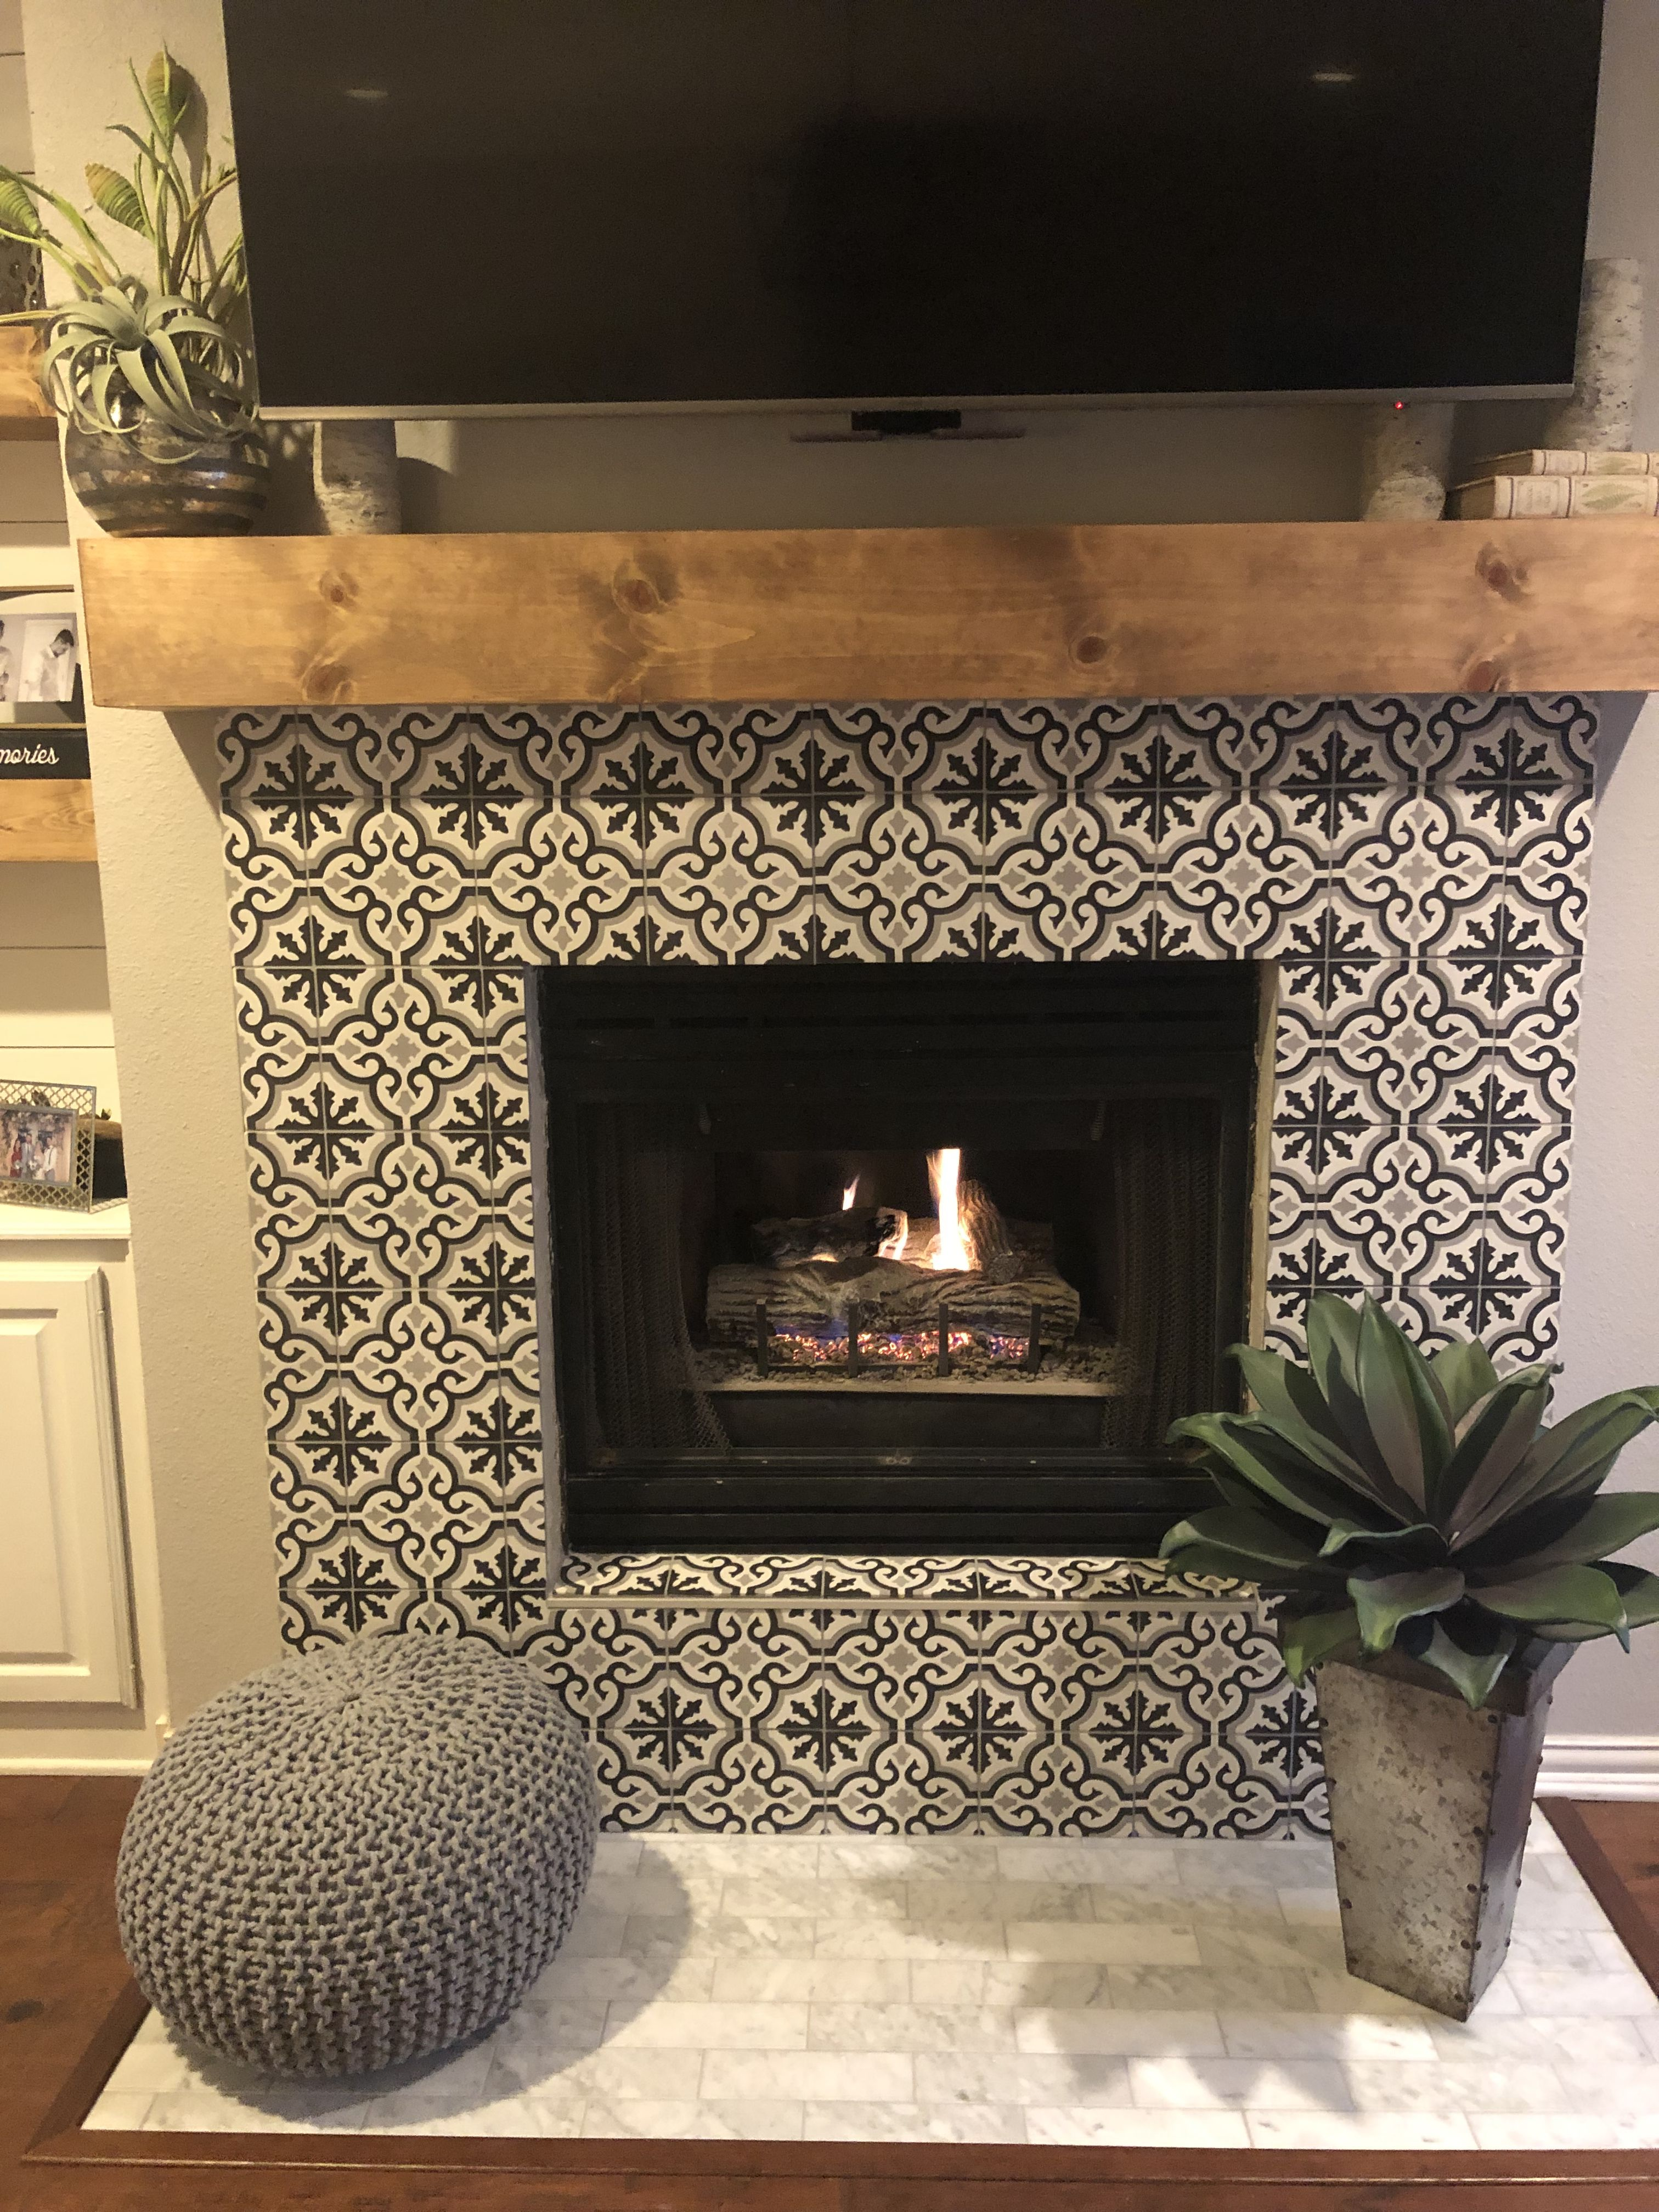 Cement Tile Make Over Removed The Hearth And Tiled Over The Brick Love It Home Fireplace Fireplace Tile Fireplace Remodel